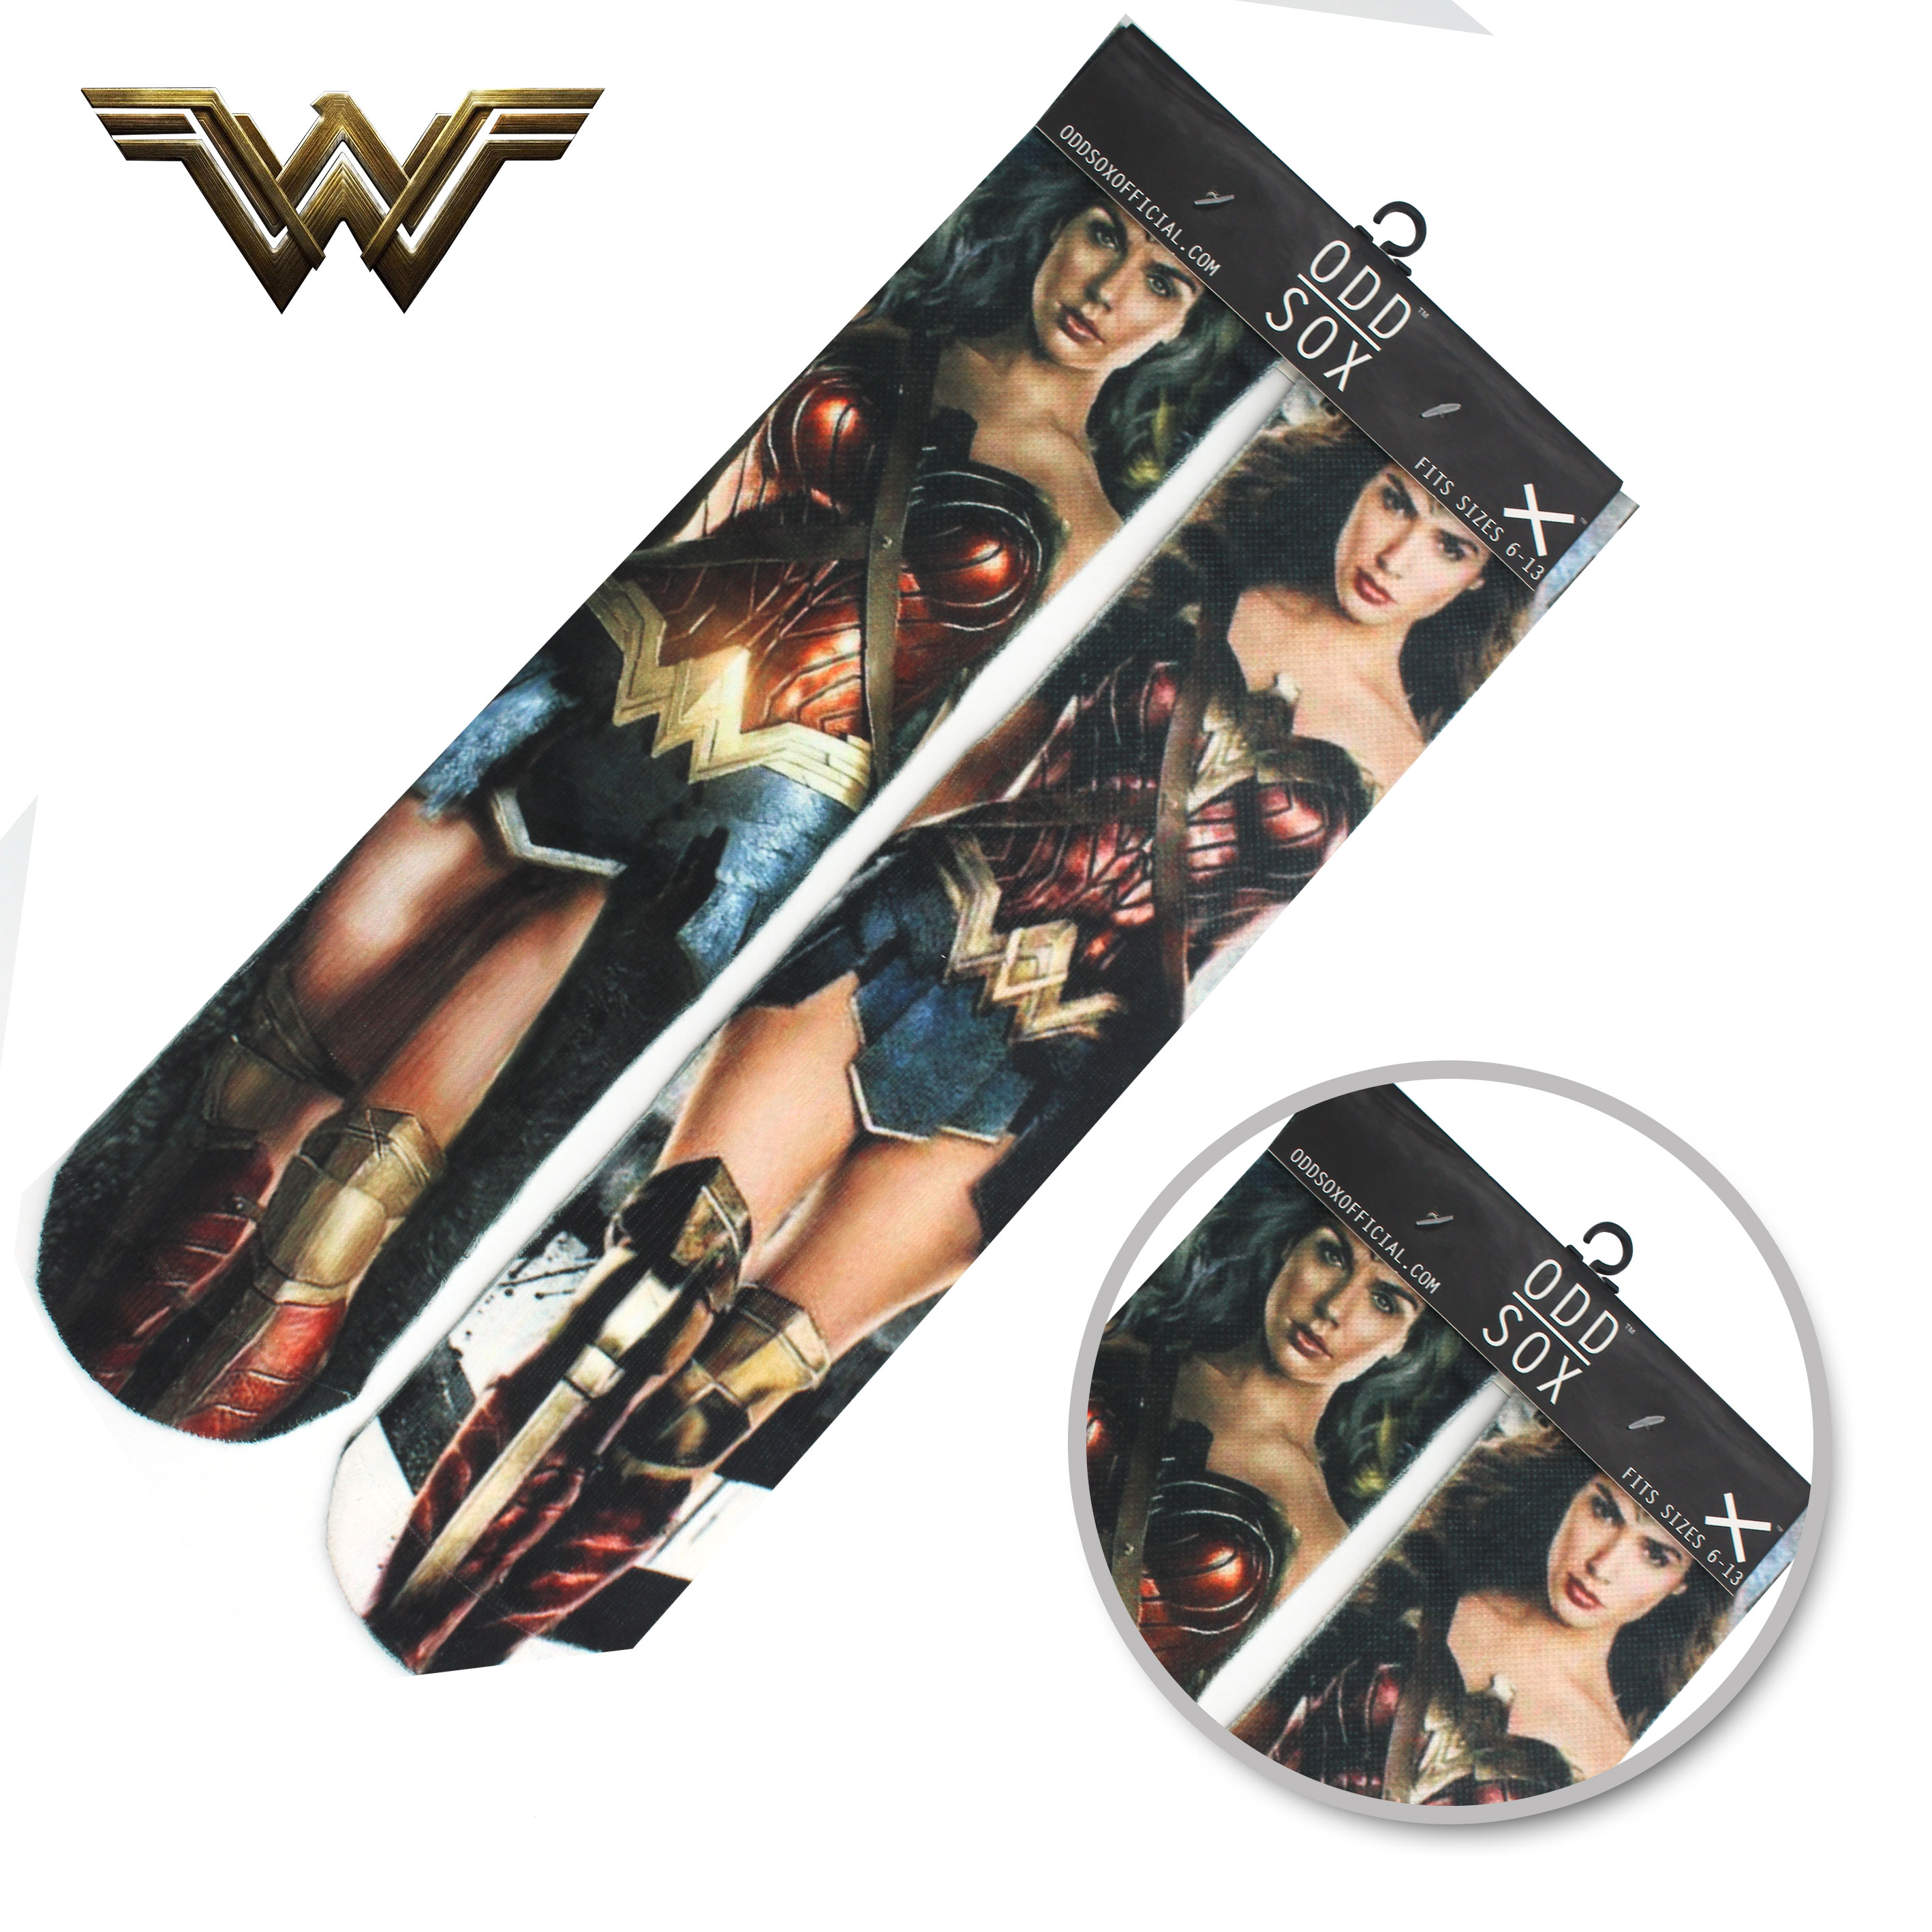 "4x16"" DC Comics Justice League Wonder Woman Batman Cotton Socks Colorful Stockings Tights Cosplay Costume Unisex Fashion Gifts"